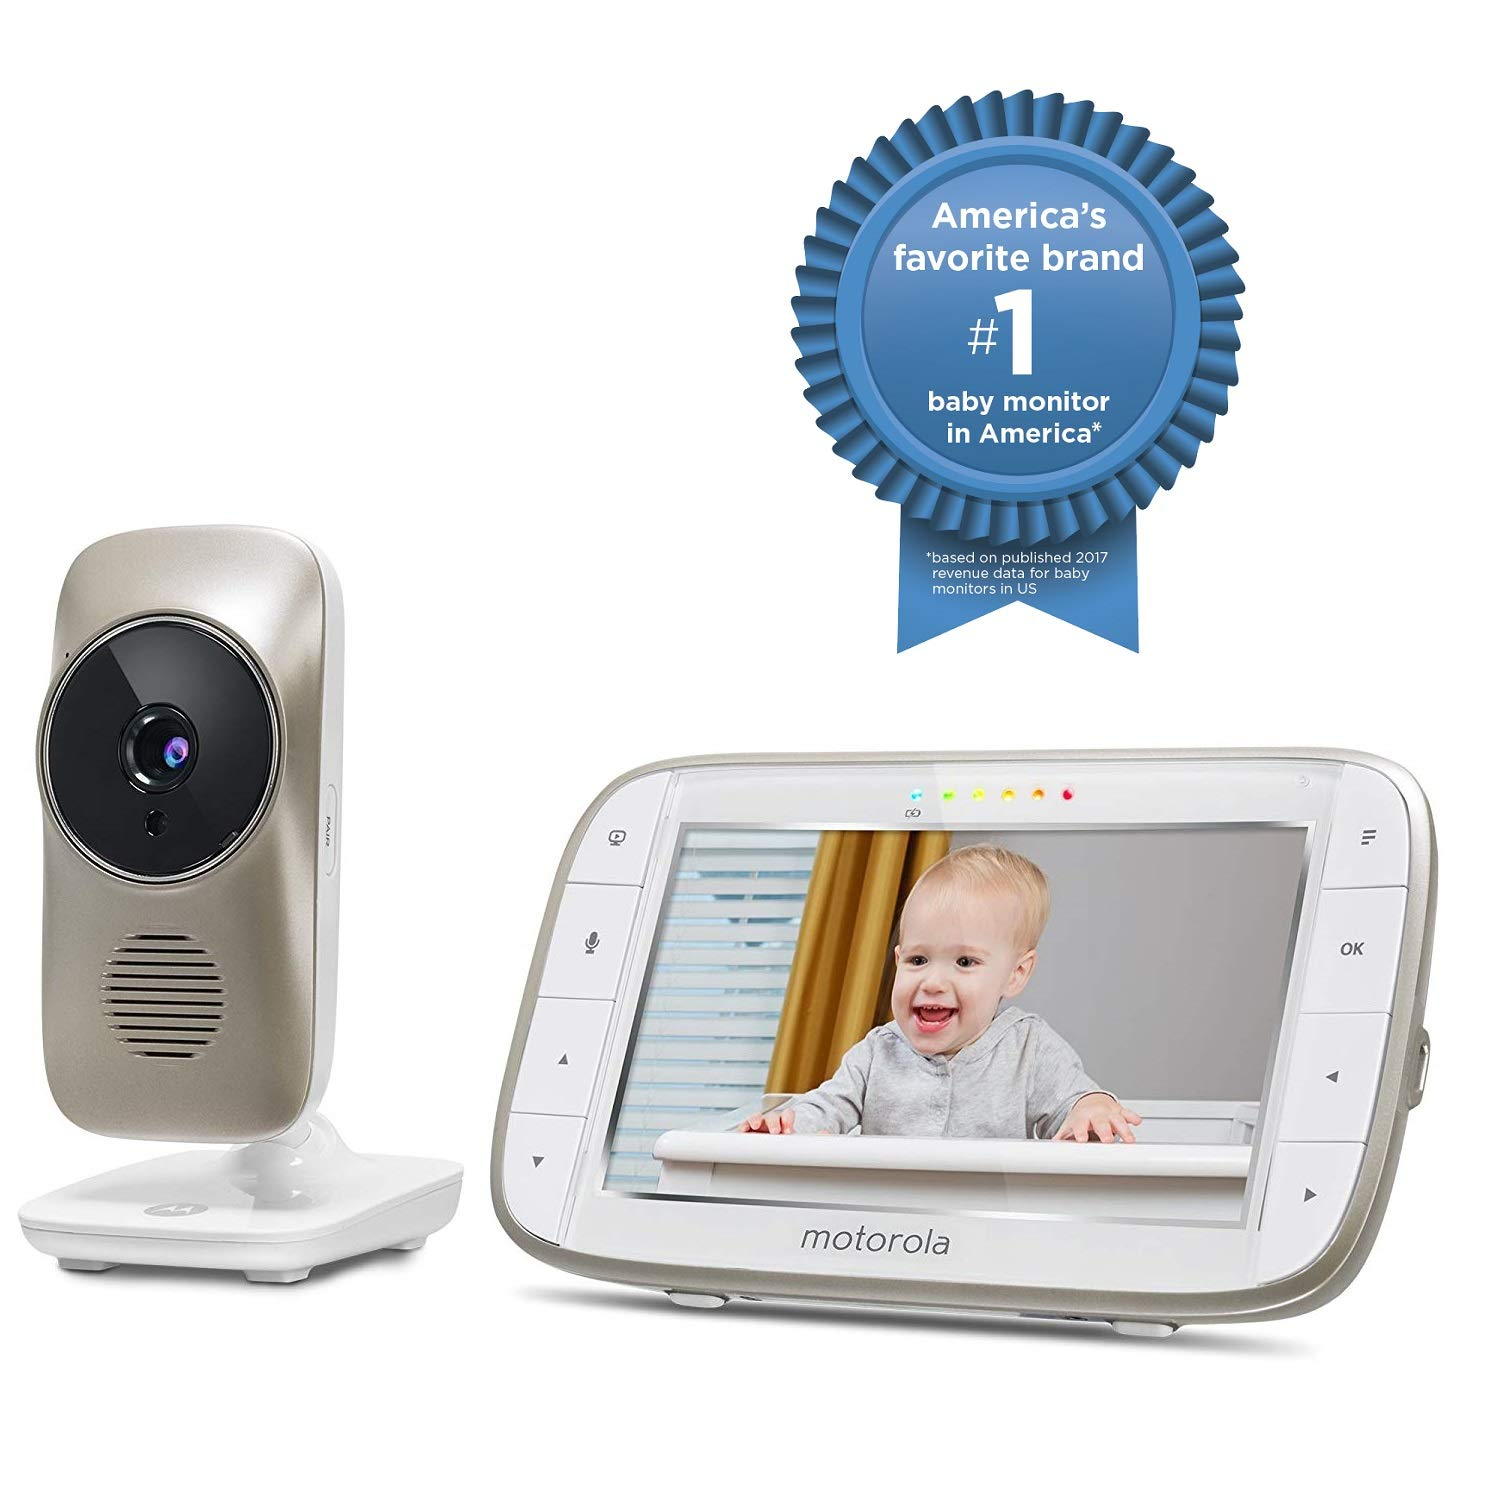 Computers/tablets & Networking Software Dependable Asurion 2 Year Baby Electronics Protection Plan $175 $199.99